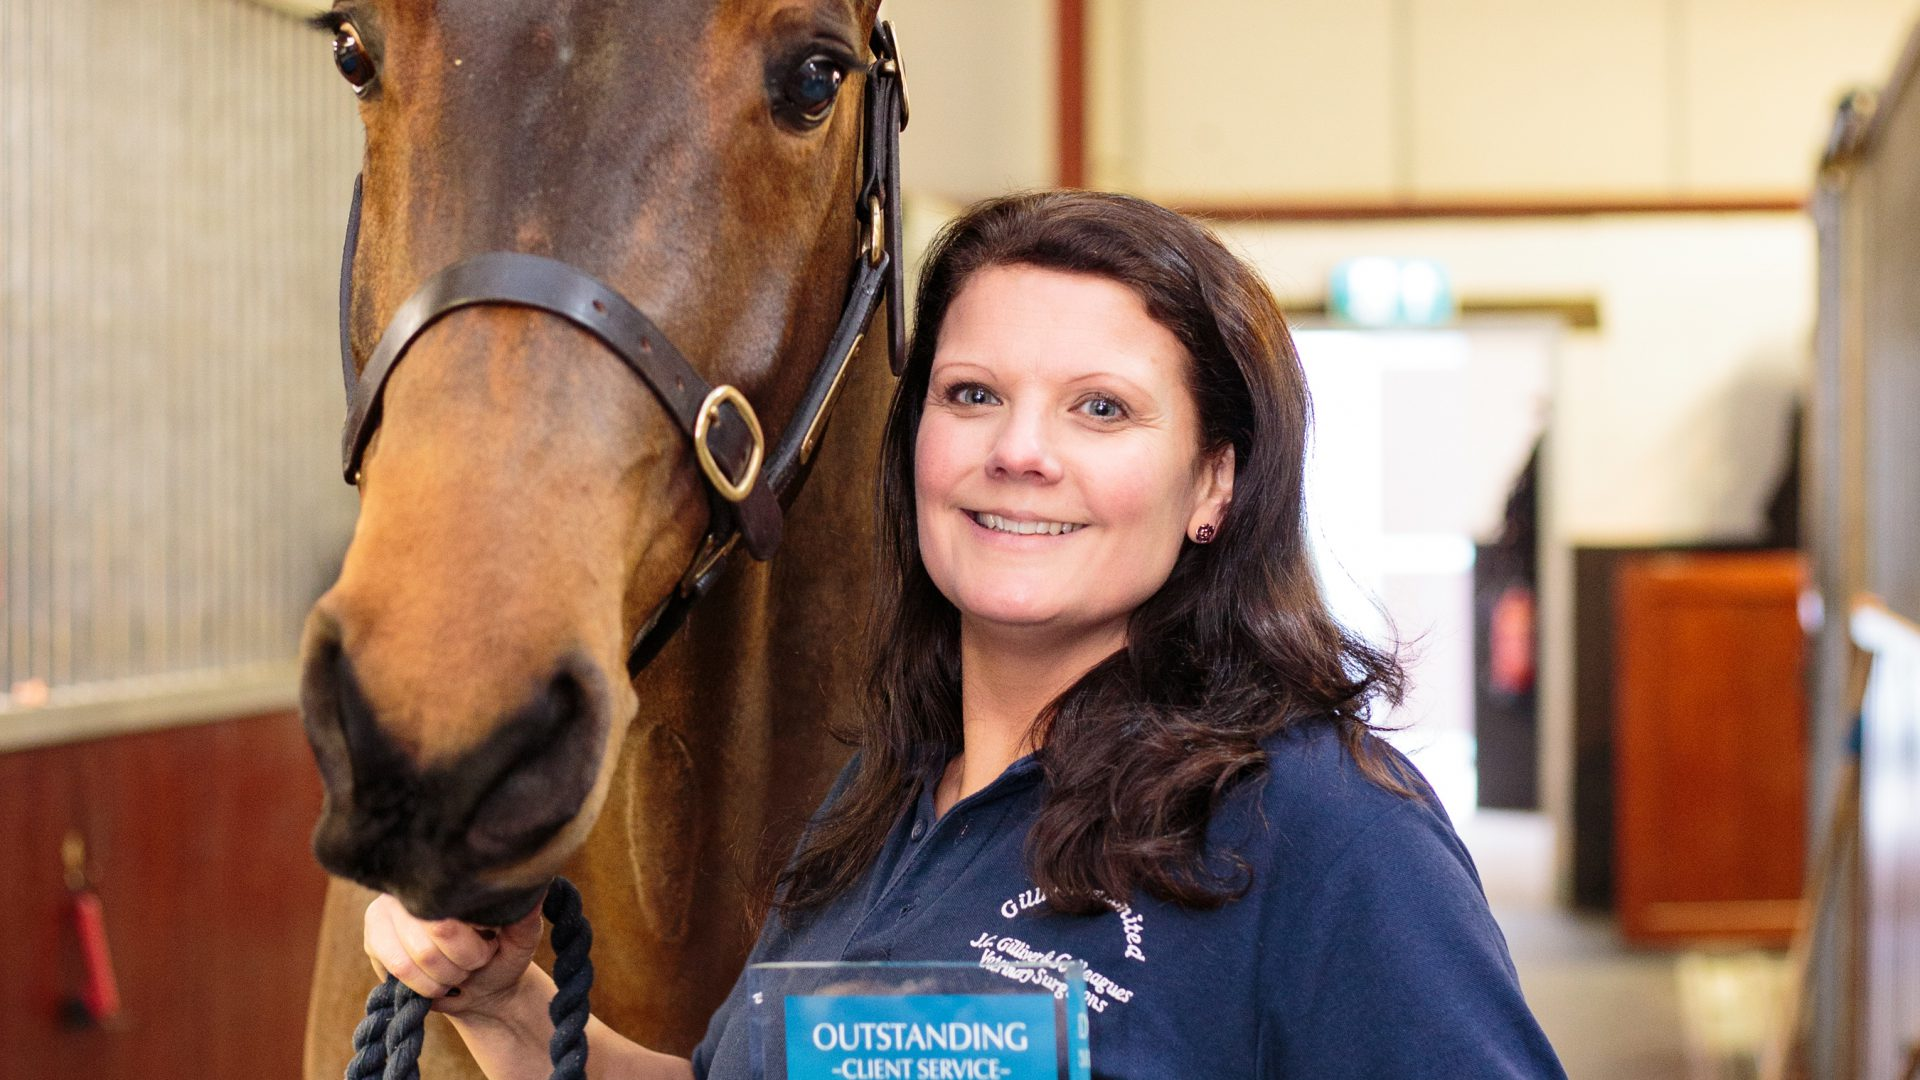 Charlotte takes the reins at Congress